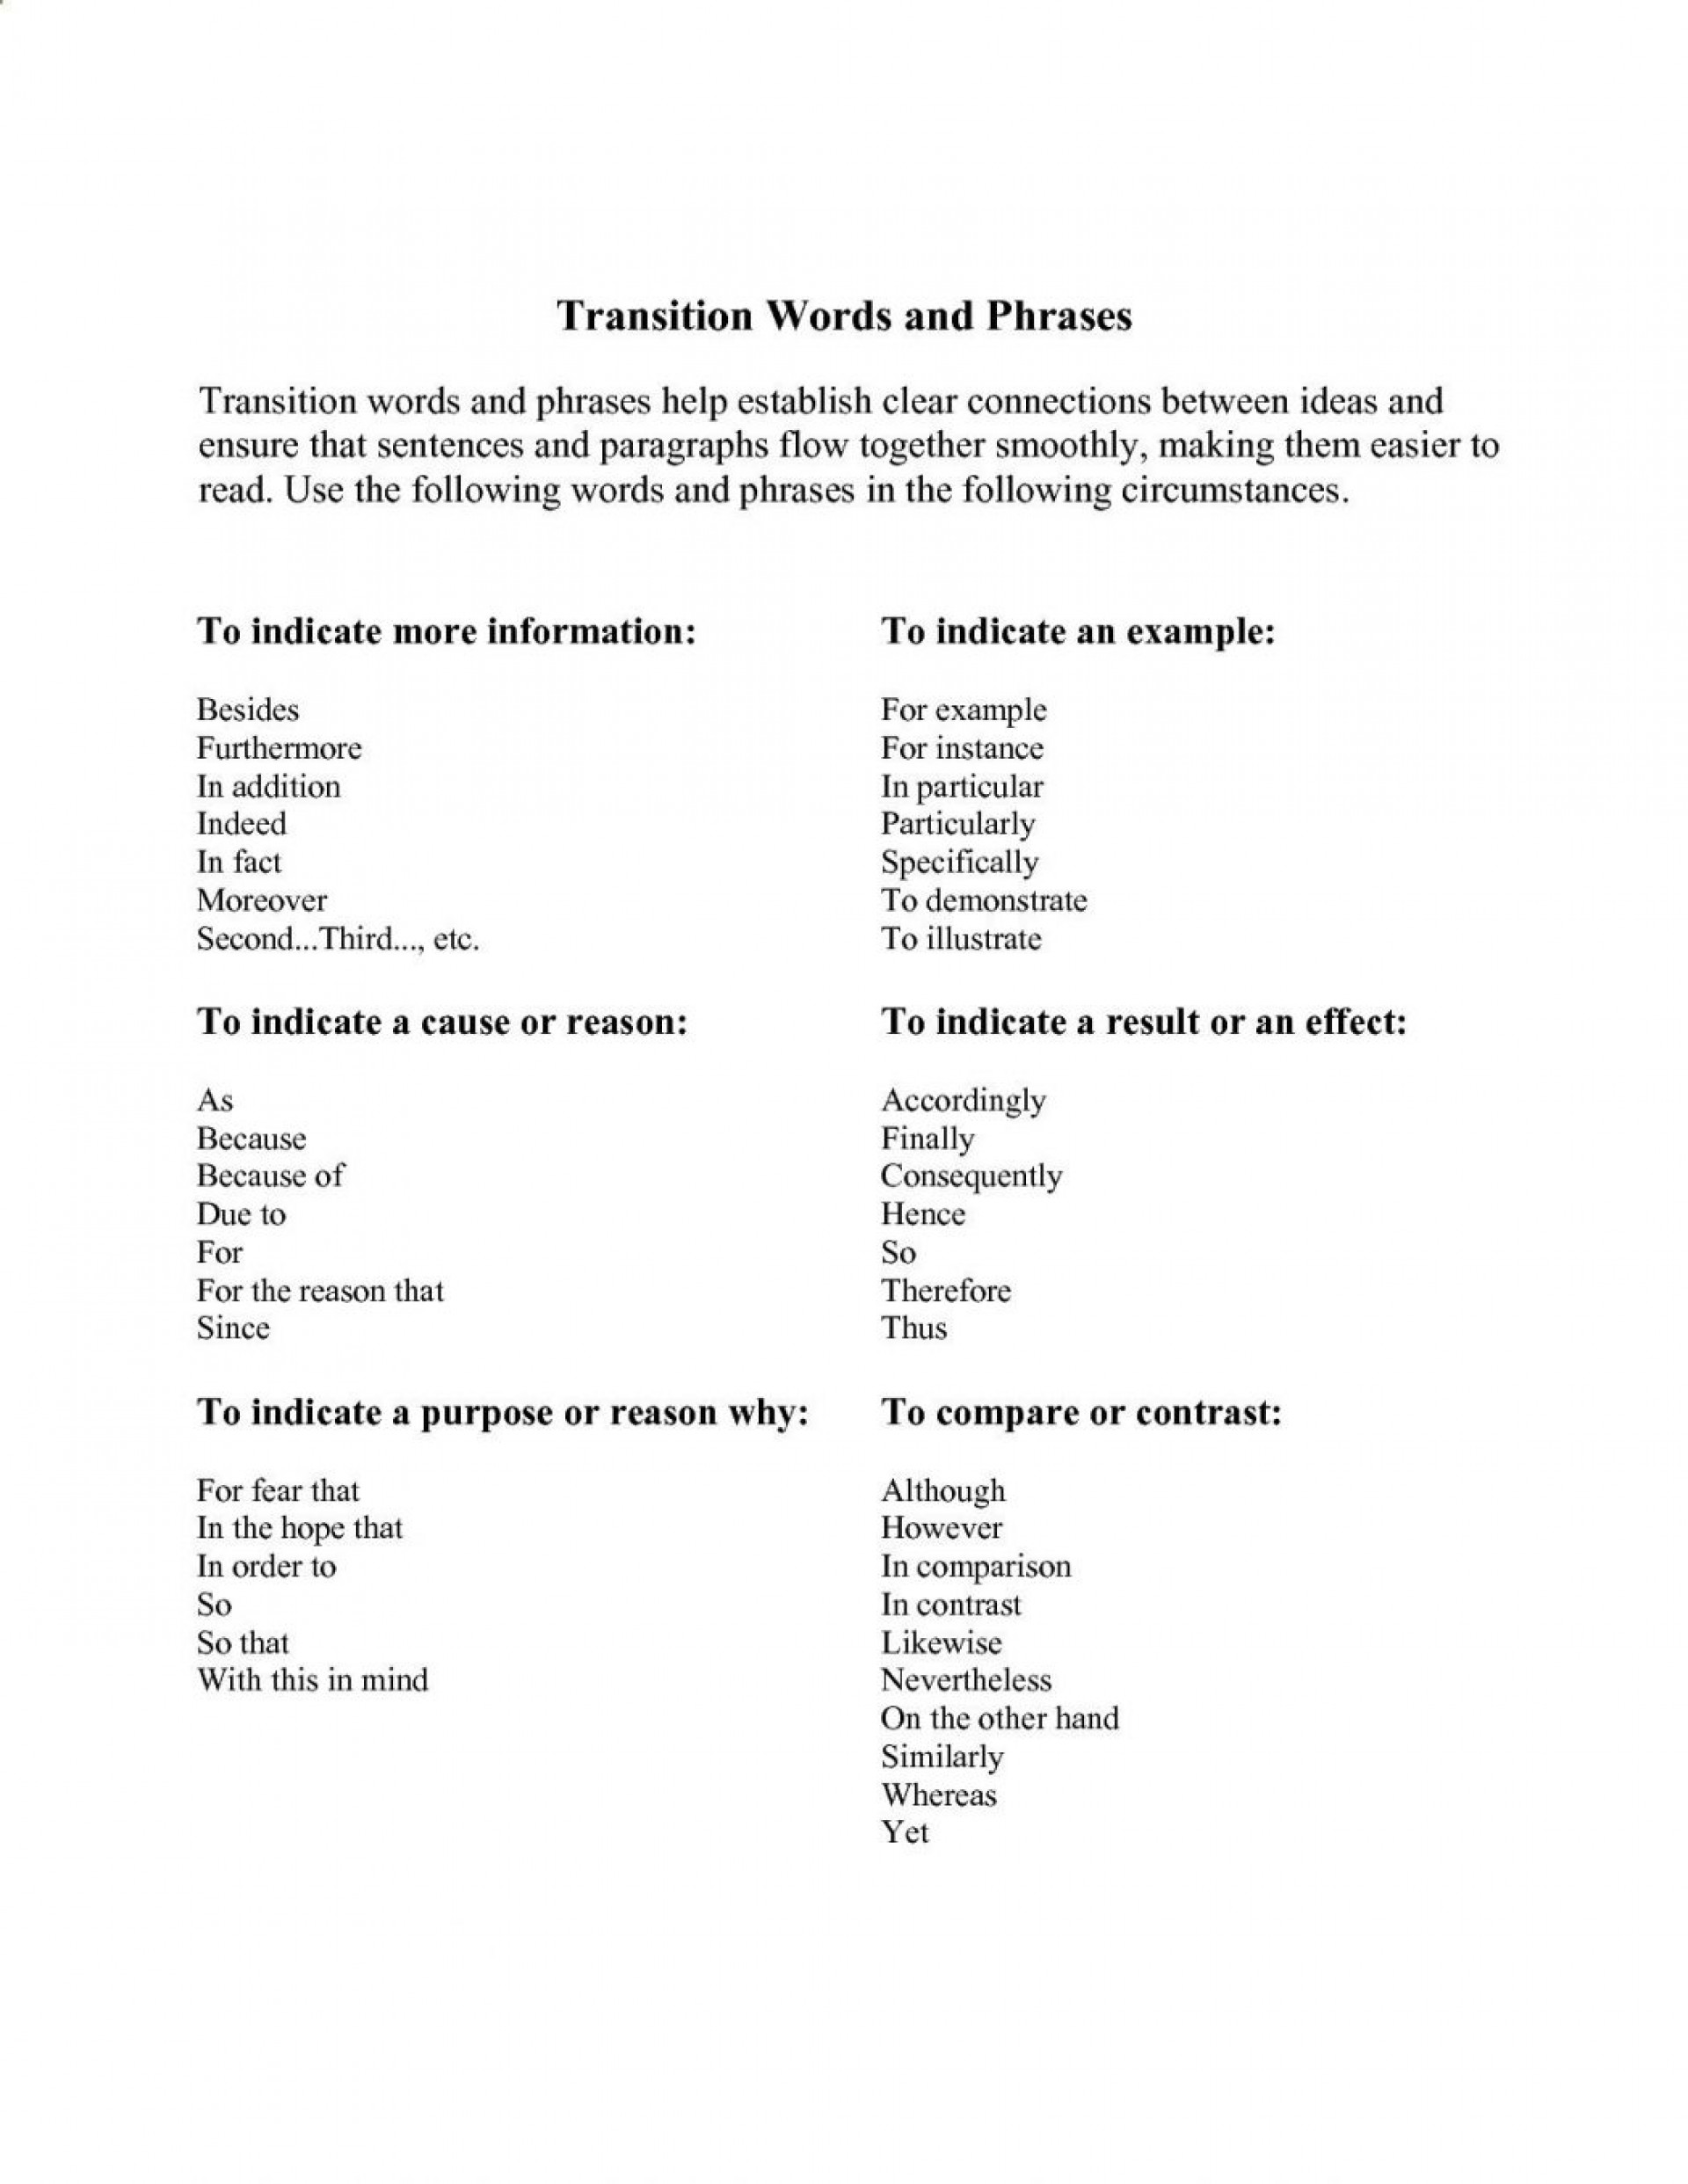 022 Transitional Words And Phrases Help An Essay To Flow More Smoothly Transition For Essays First Body Paragraph Start Pdf Next 1048x1356 Transitions In Outstanding Use College Writing Ppt Smooth 1920